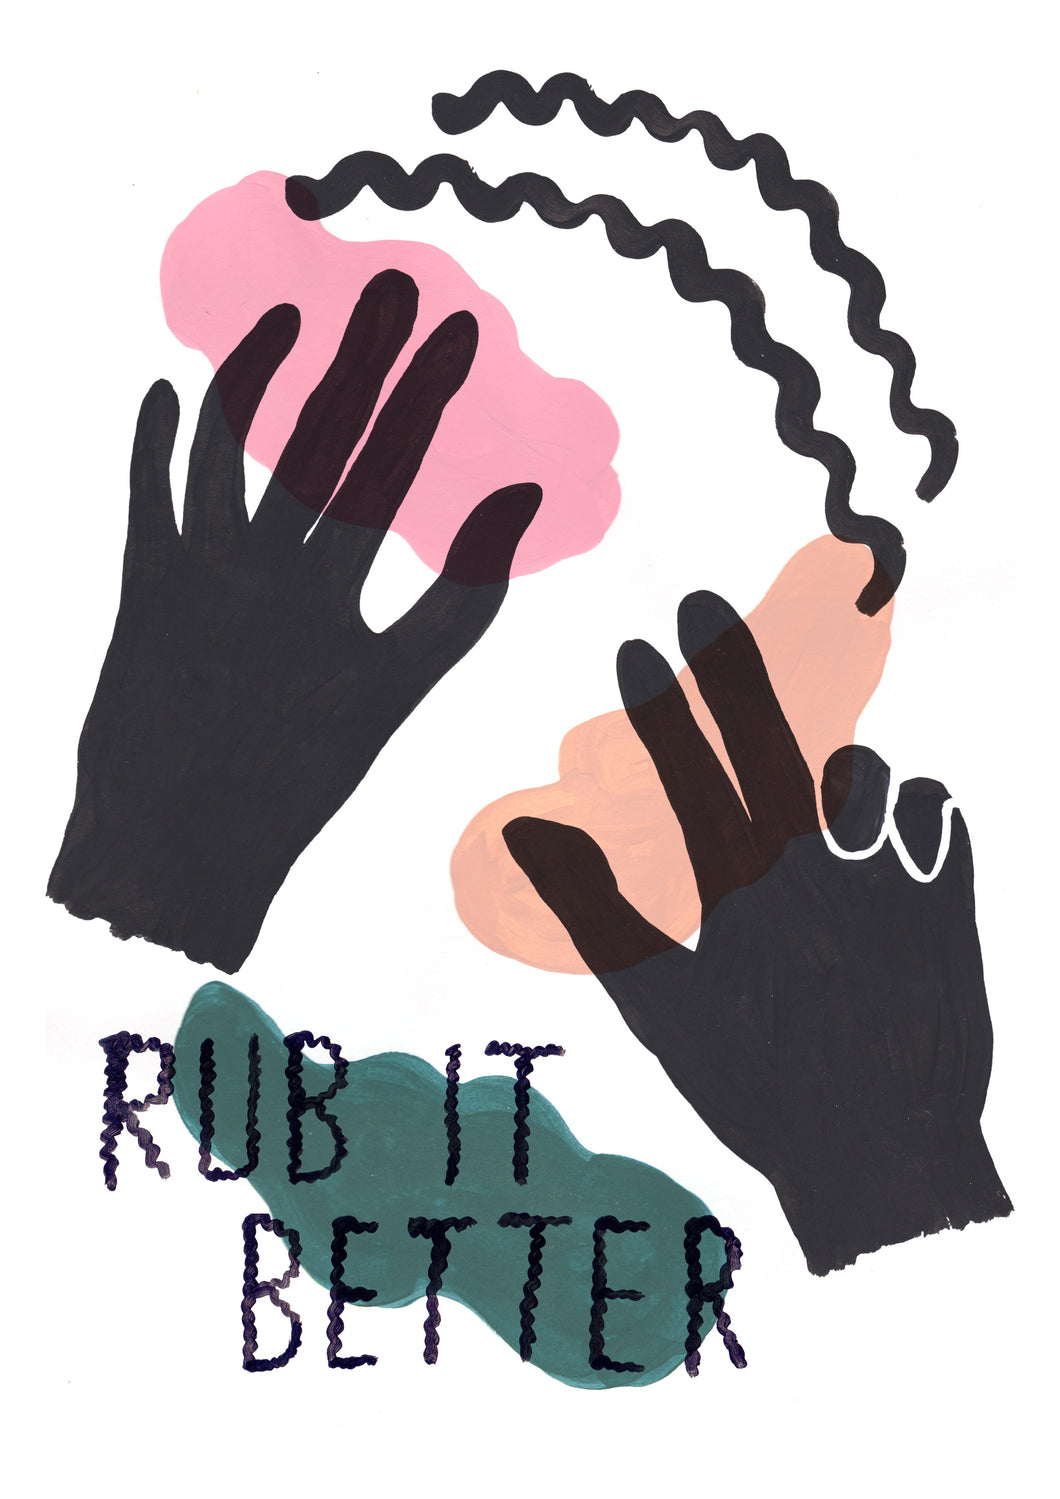 RUB IT BETTER A3 PRINT